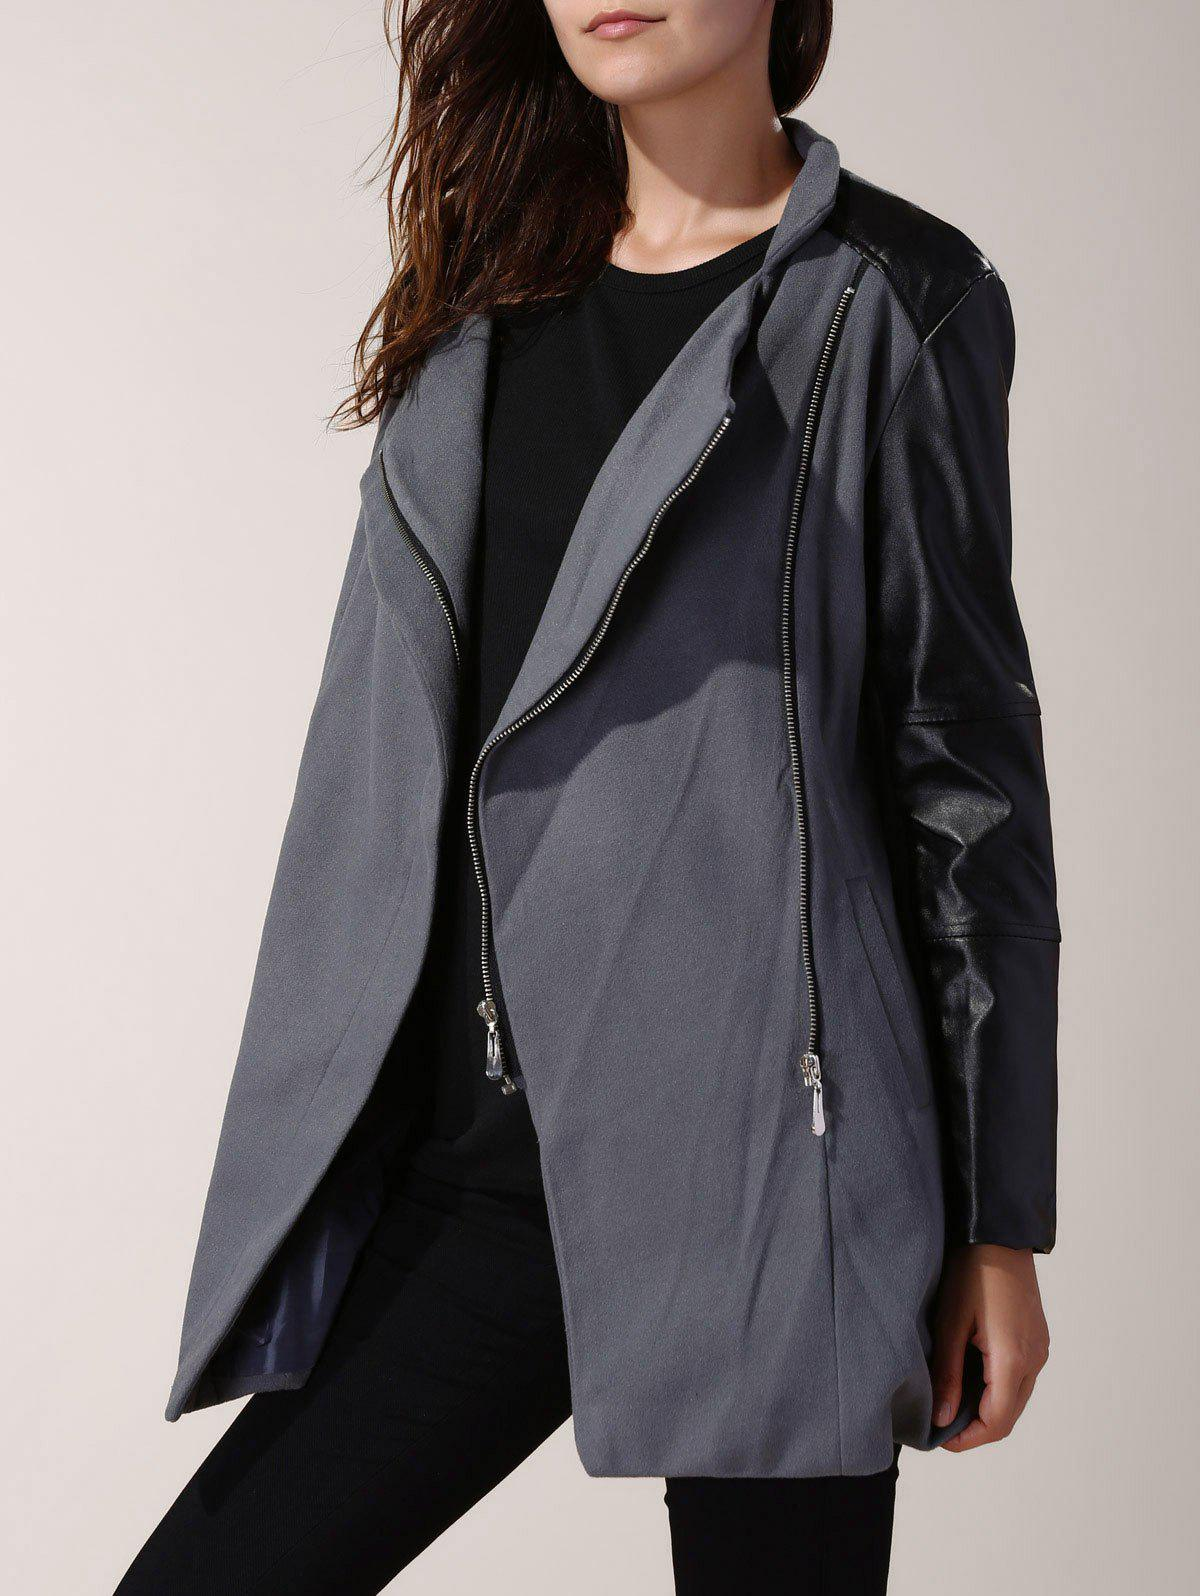 Charming Stand Collar Zippered Faux Leather Spliced Wool Coat For Women - GRAY XL